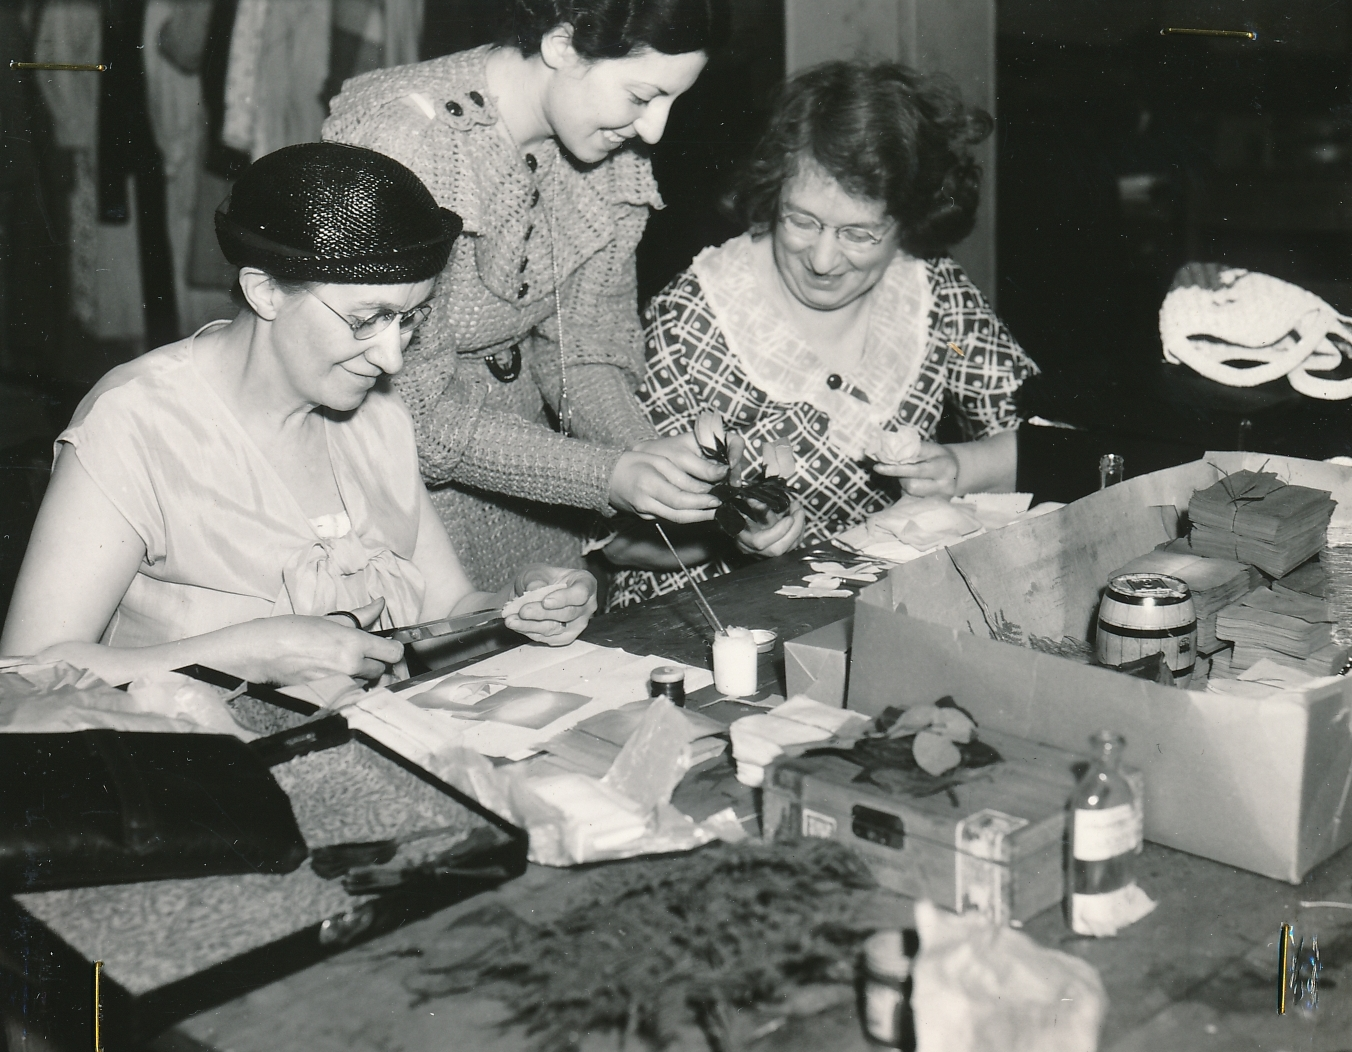 Learning how to make artificial flowers in a WPA handicraft class in Buffalo, New York. Photo courtesy of the National Archives (ca. 1936).